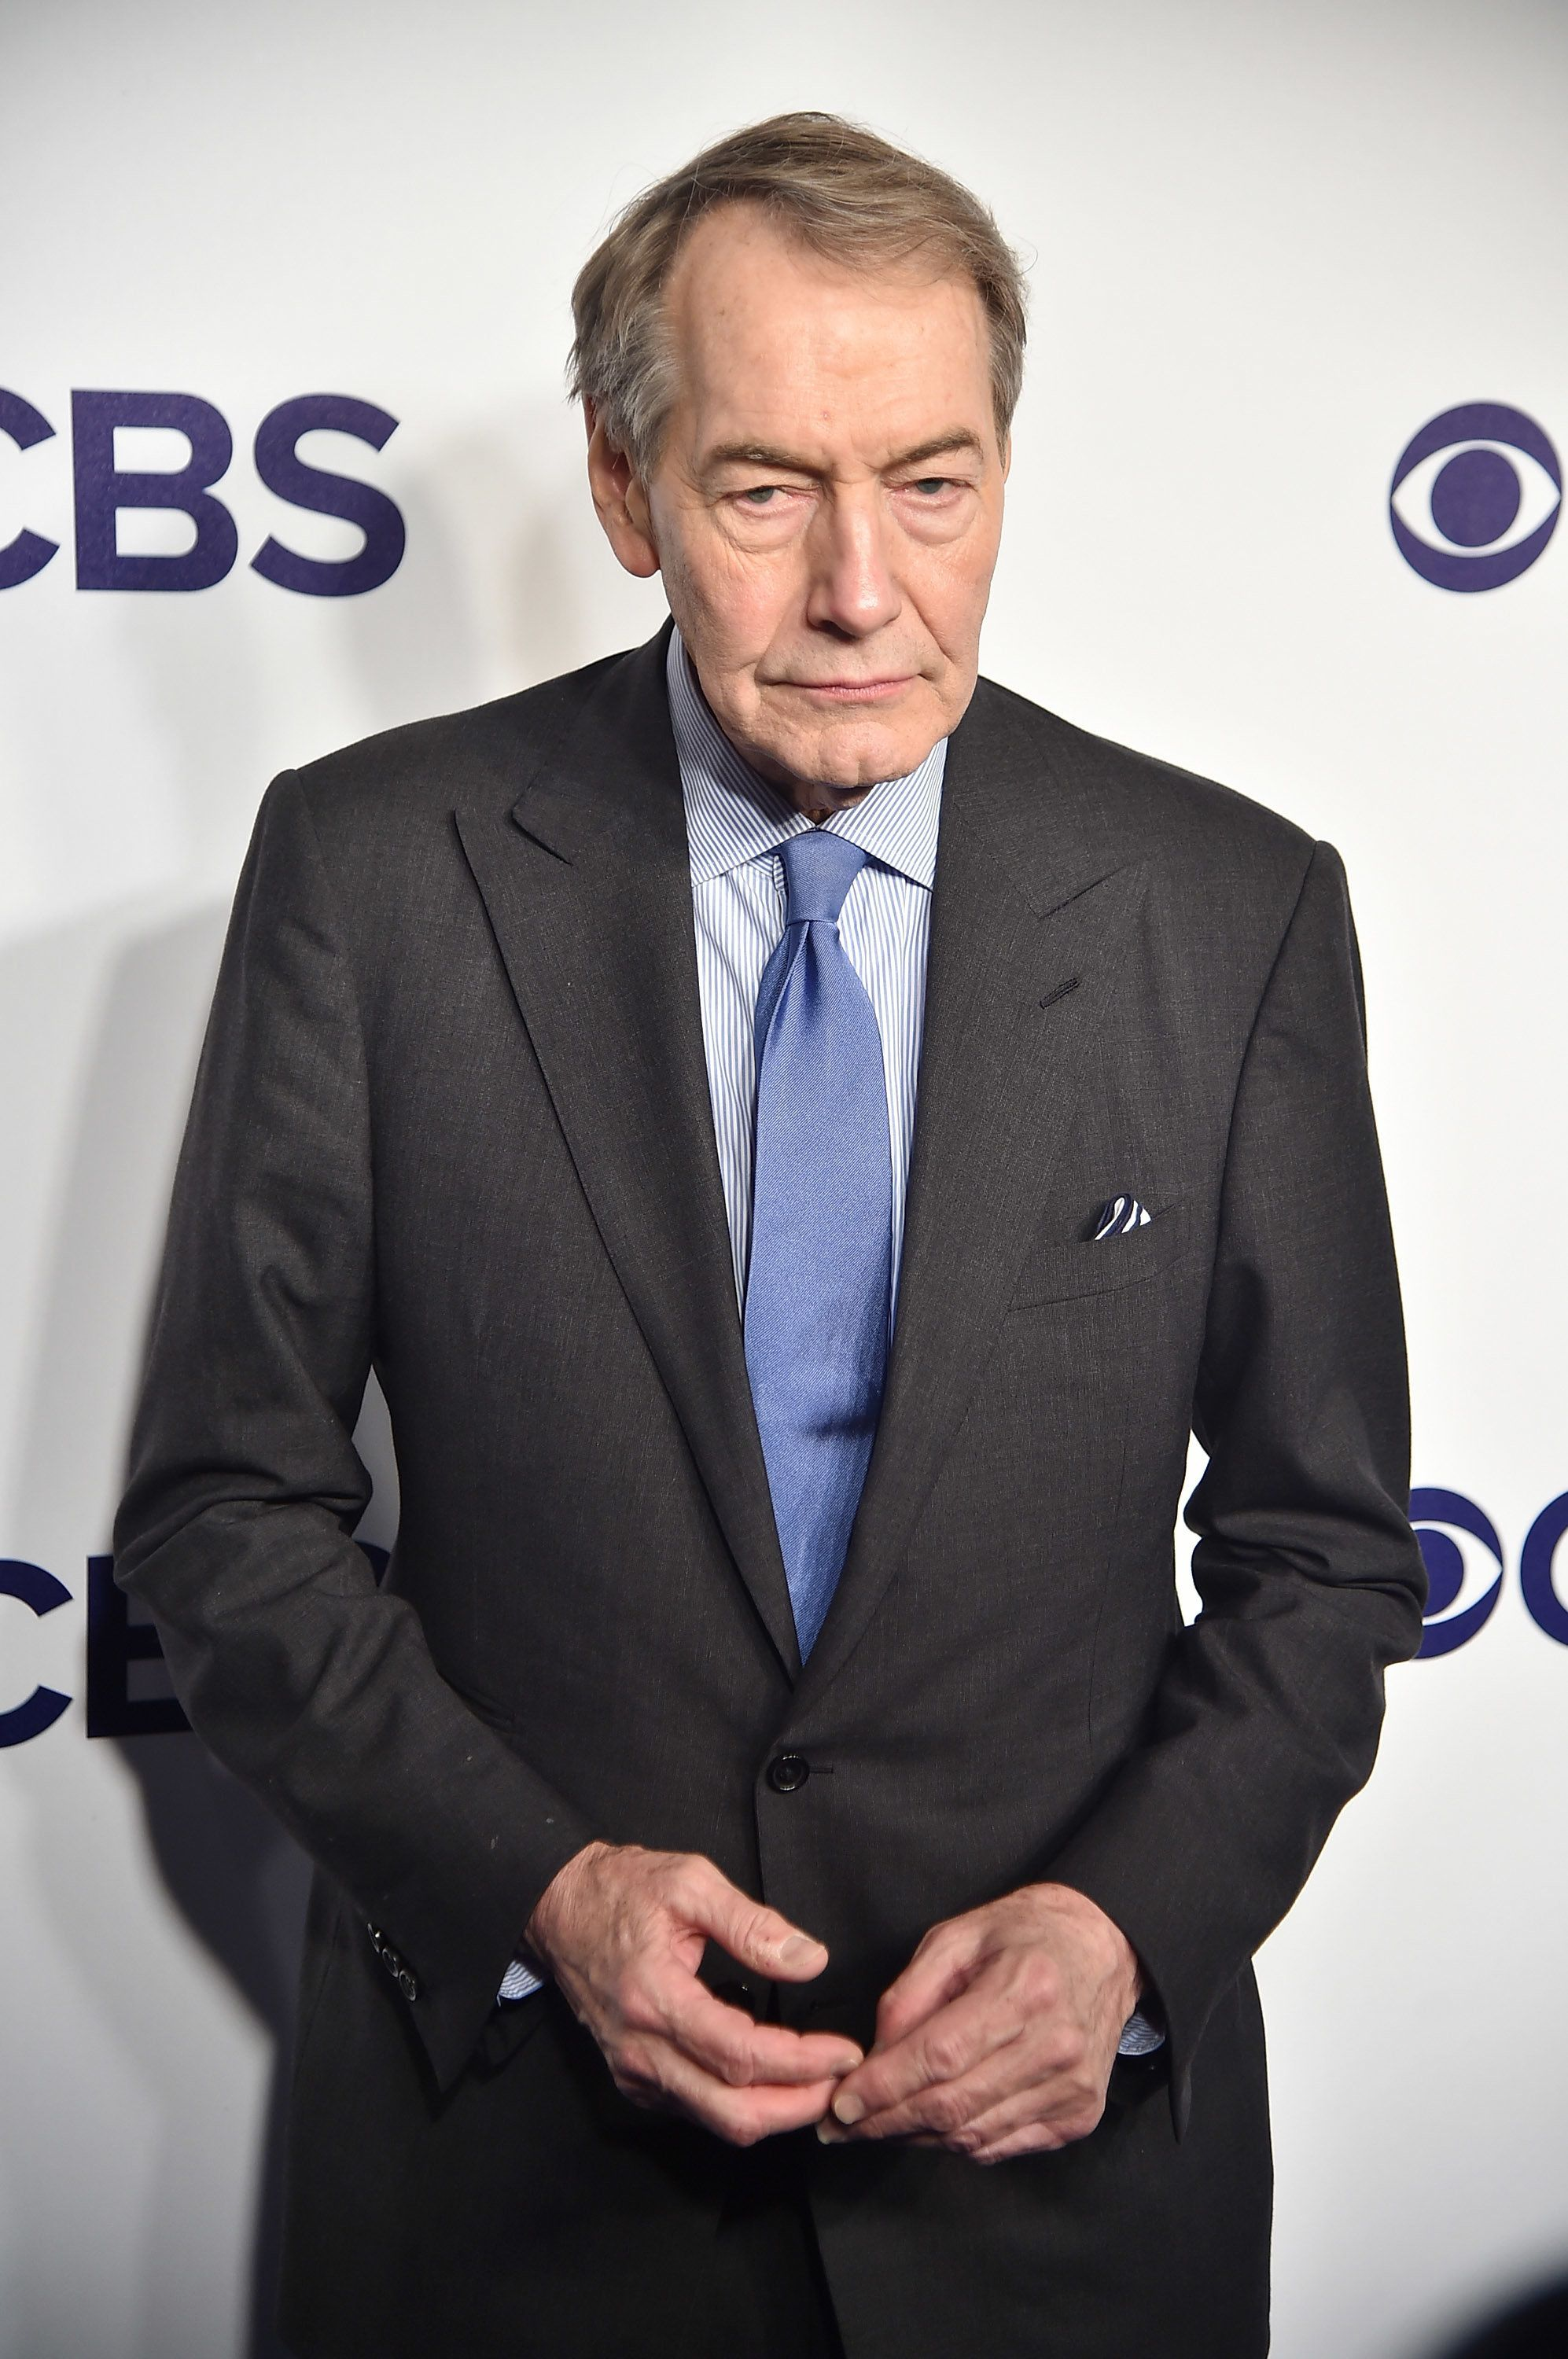 CBS fired Charlie Rose on Tuesday, while PBS cut ties with the